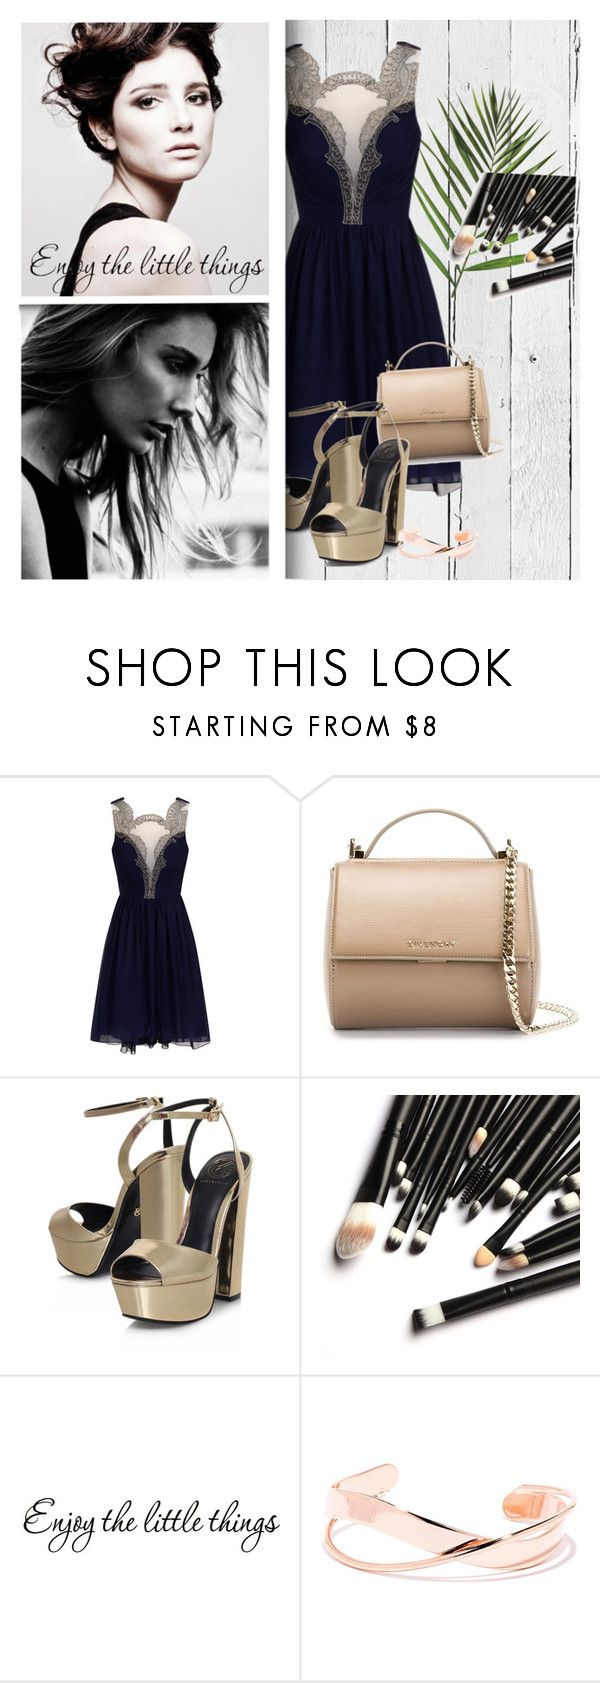 """""""965"""" by sheiivaz-15 ❤ liked on Polyvore featuring NLXL, Givenchy, Angelo, KG Kurt Geiger and HereIAgain"""